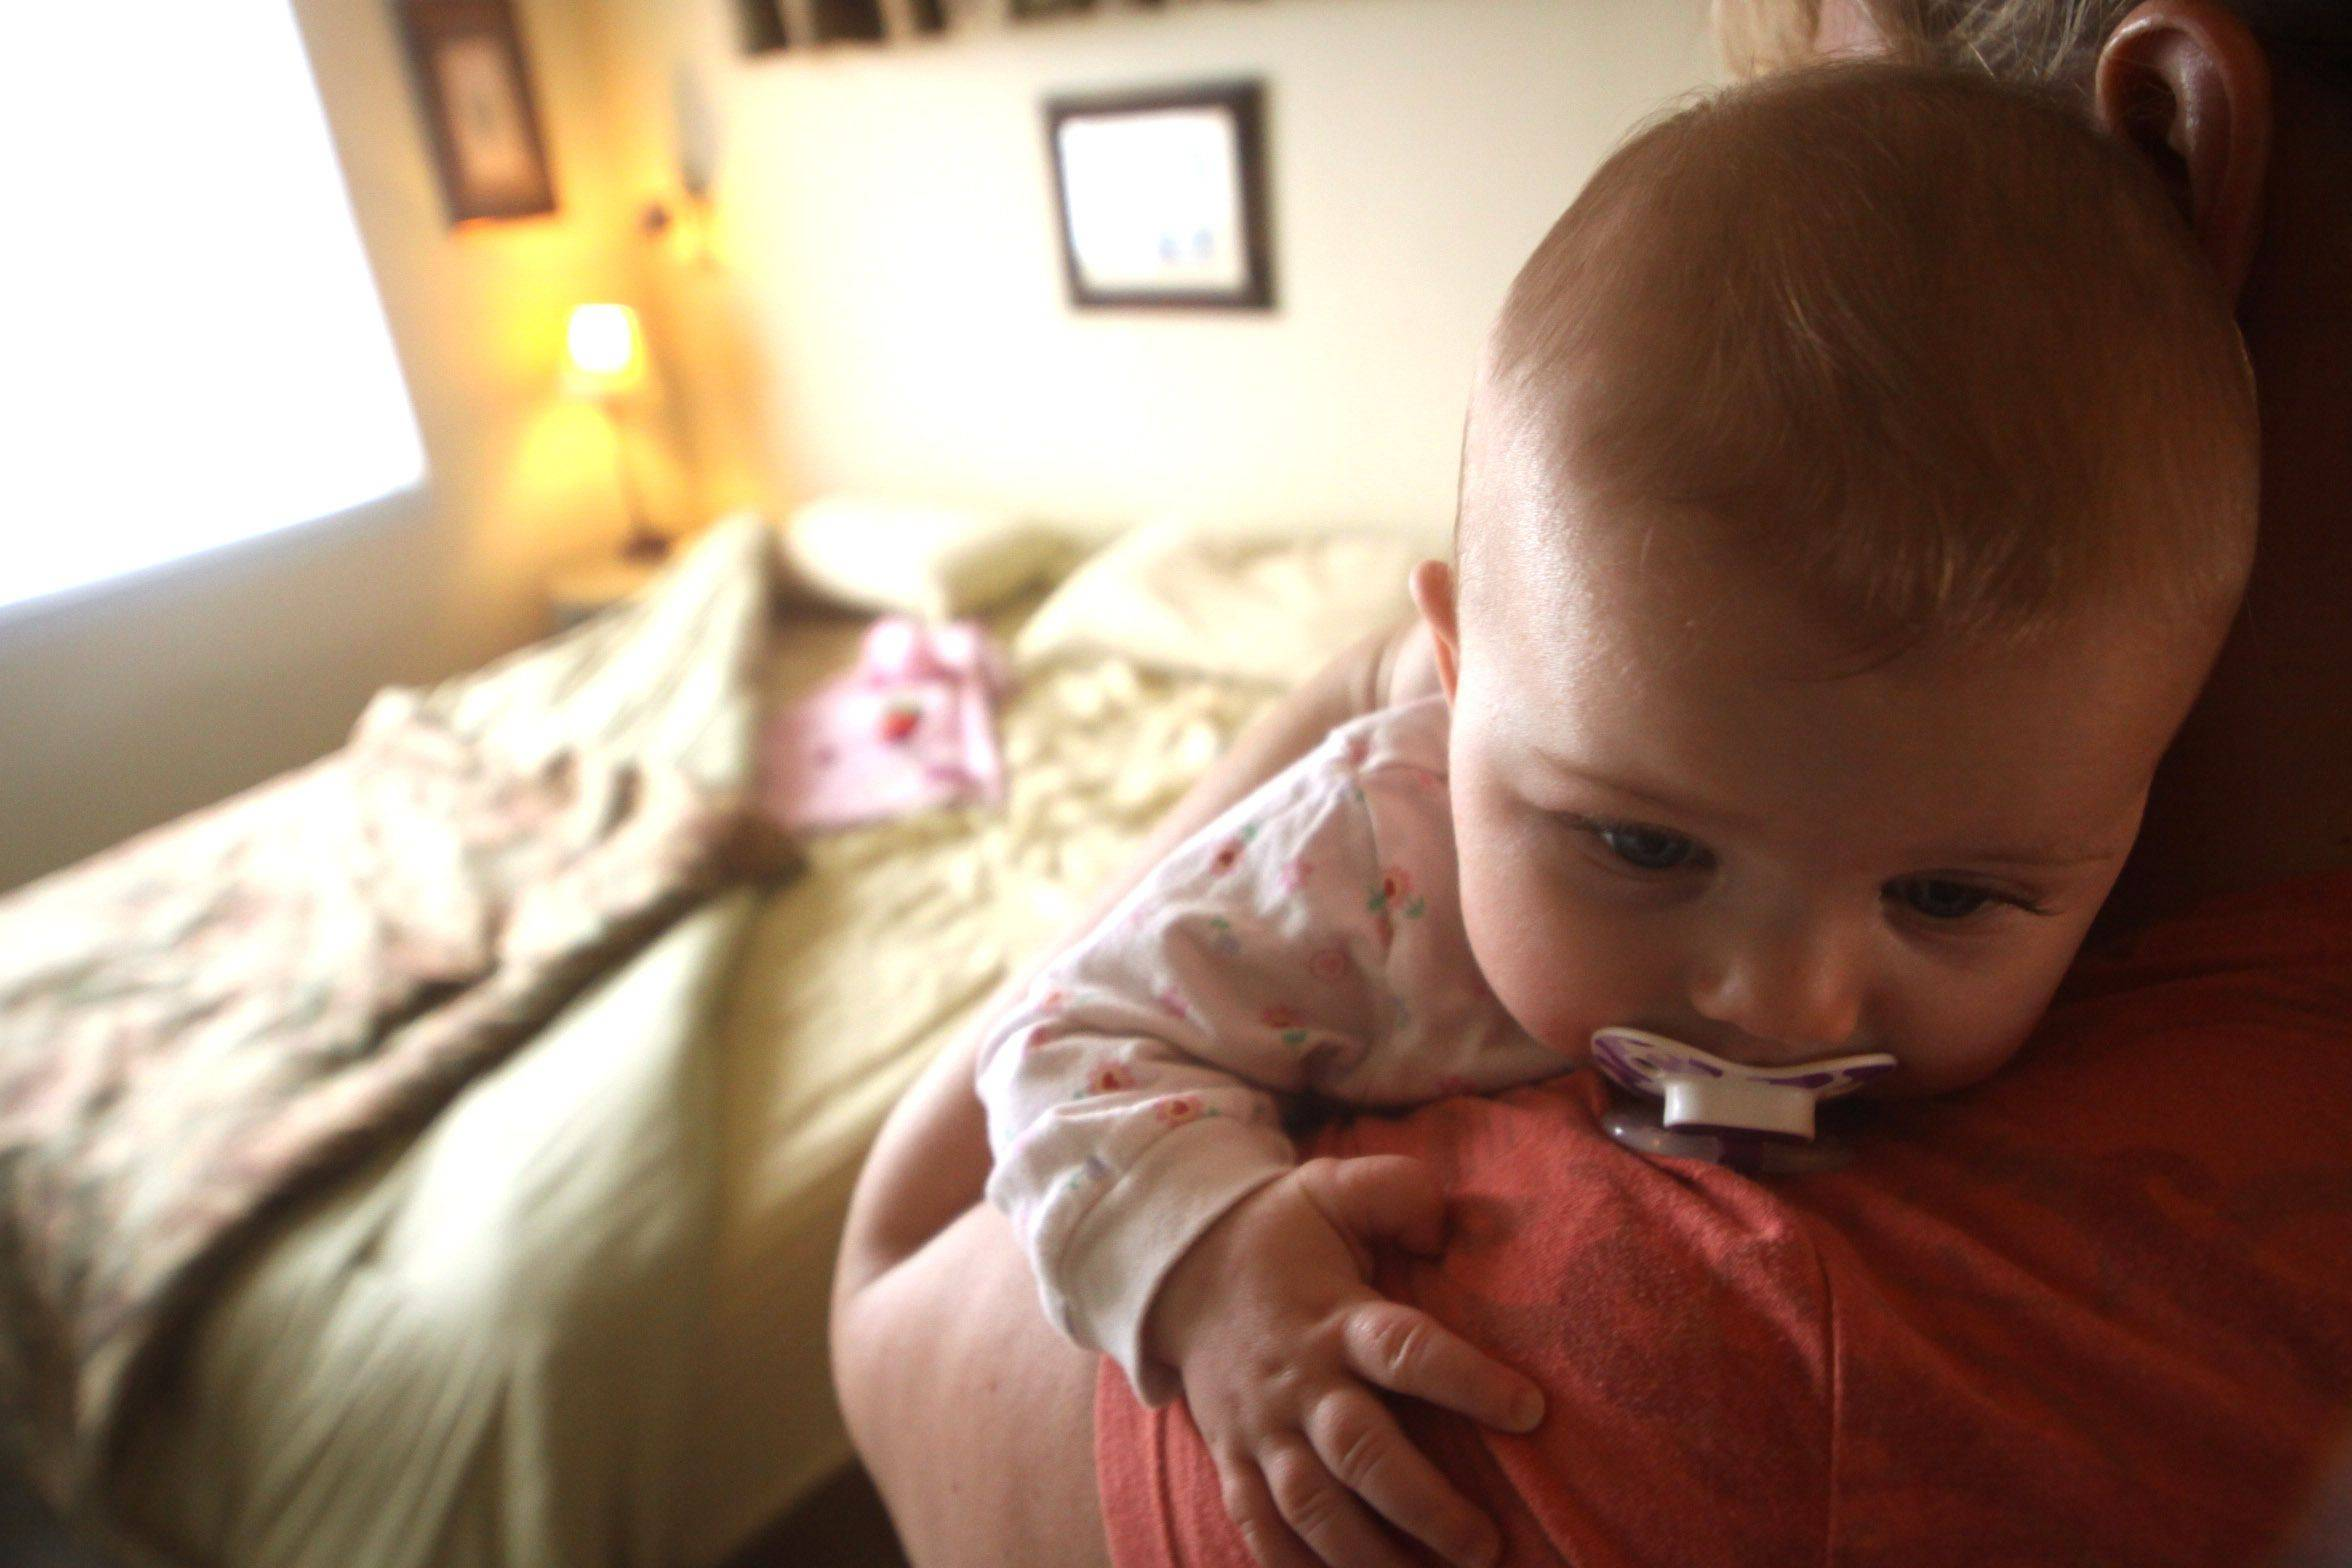 Is bedsharing dangerous for infants? DCFS says 'Yes'